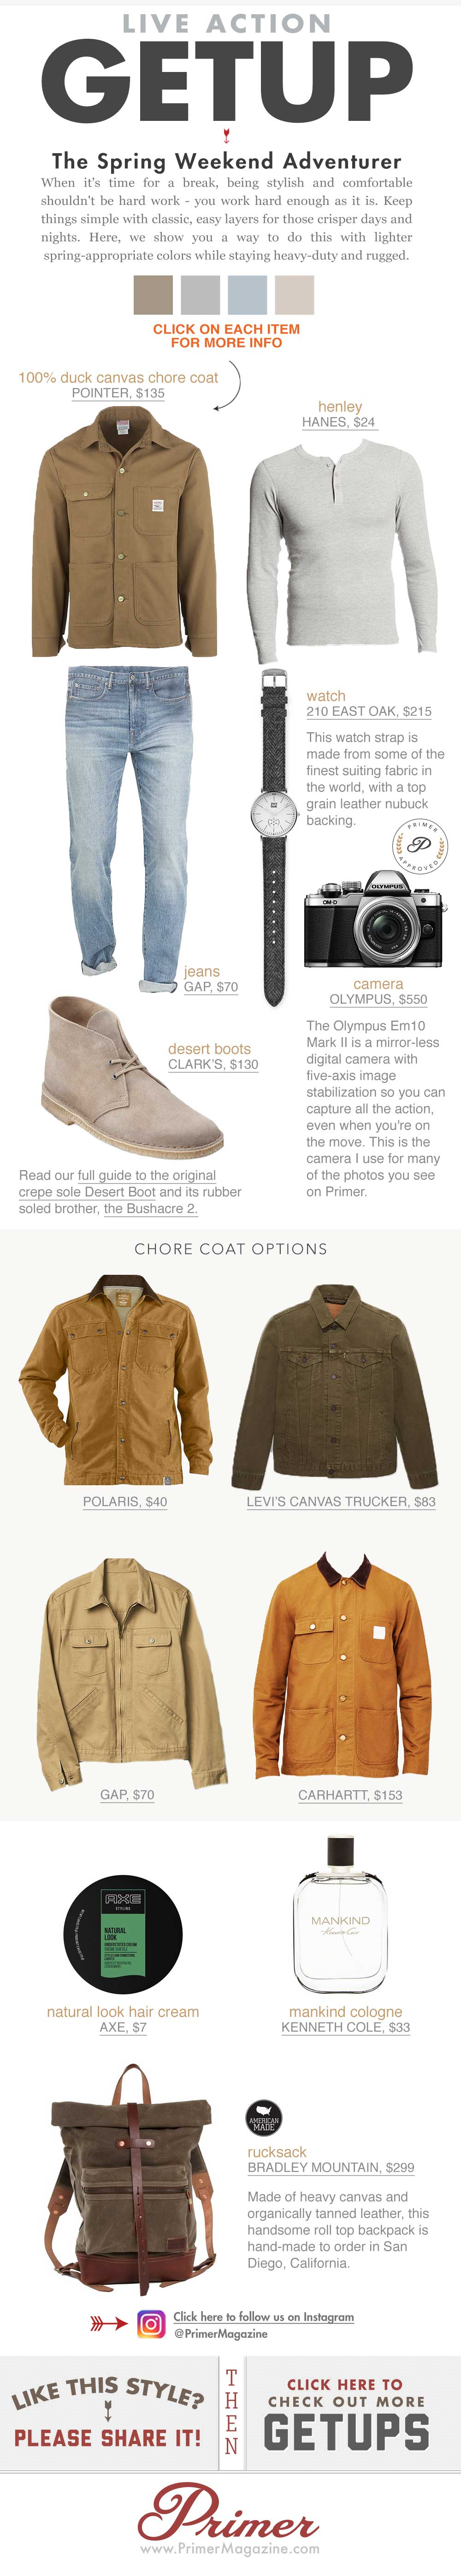 The Getup, spring outfit inspiration with tan coat gray henley, jeans, and desert boots